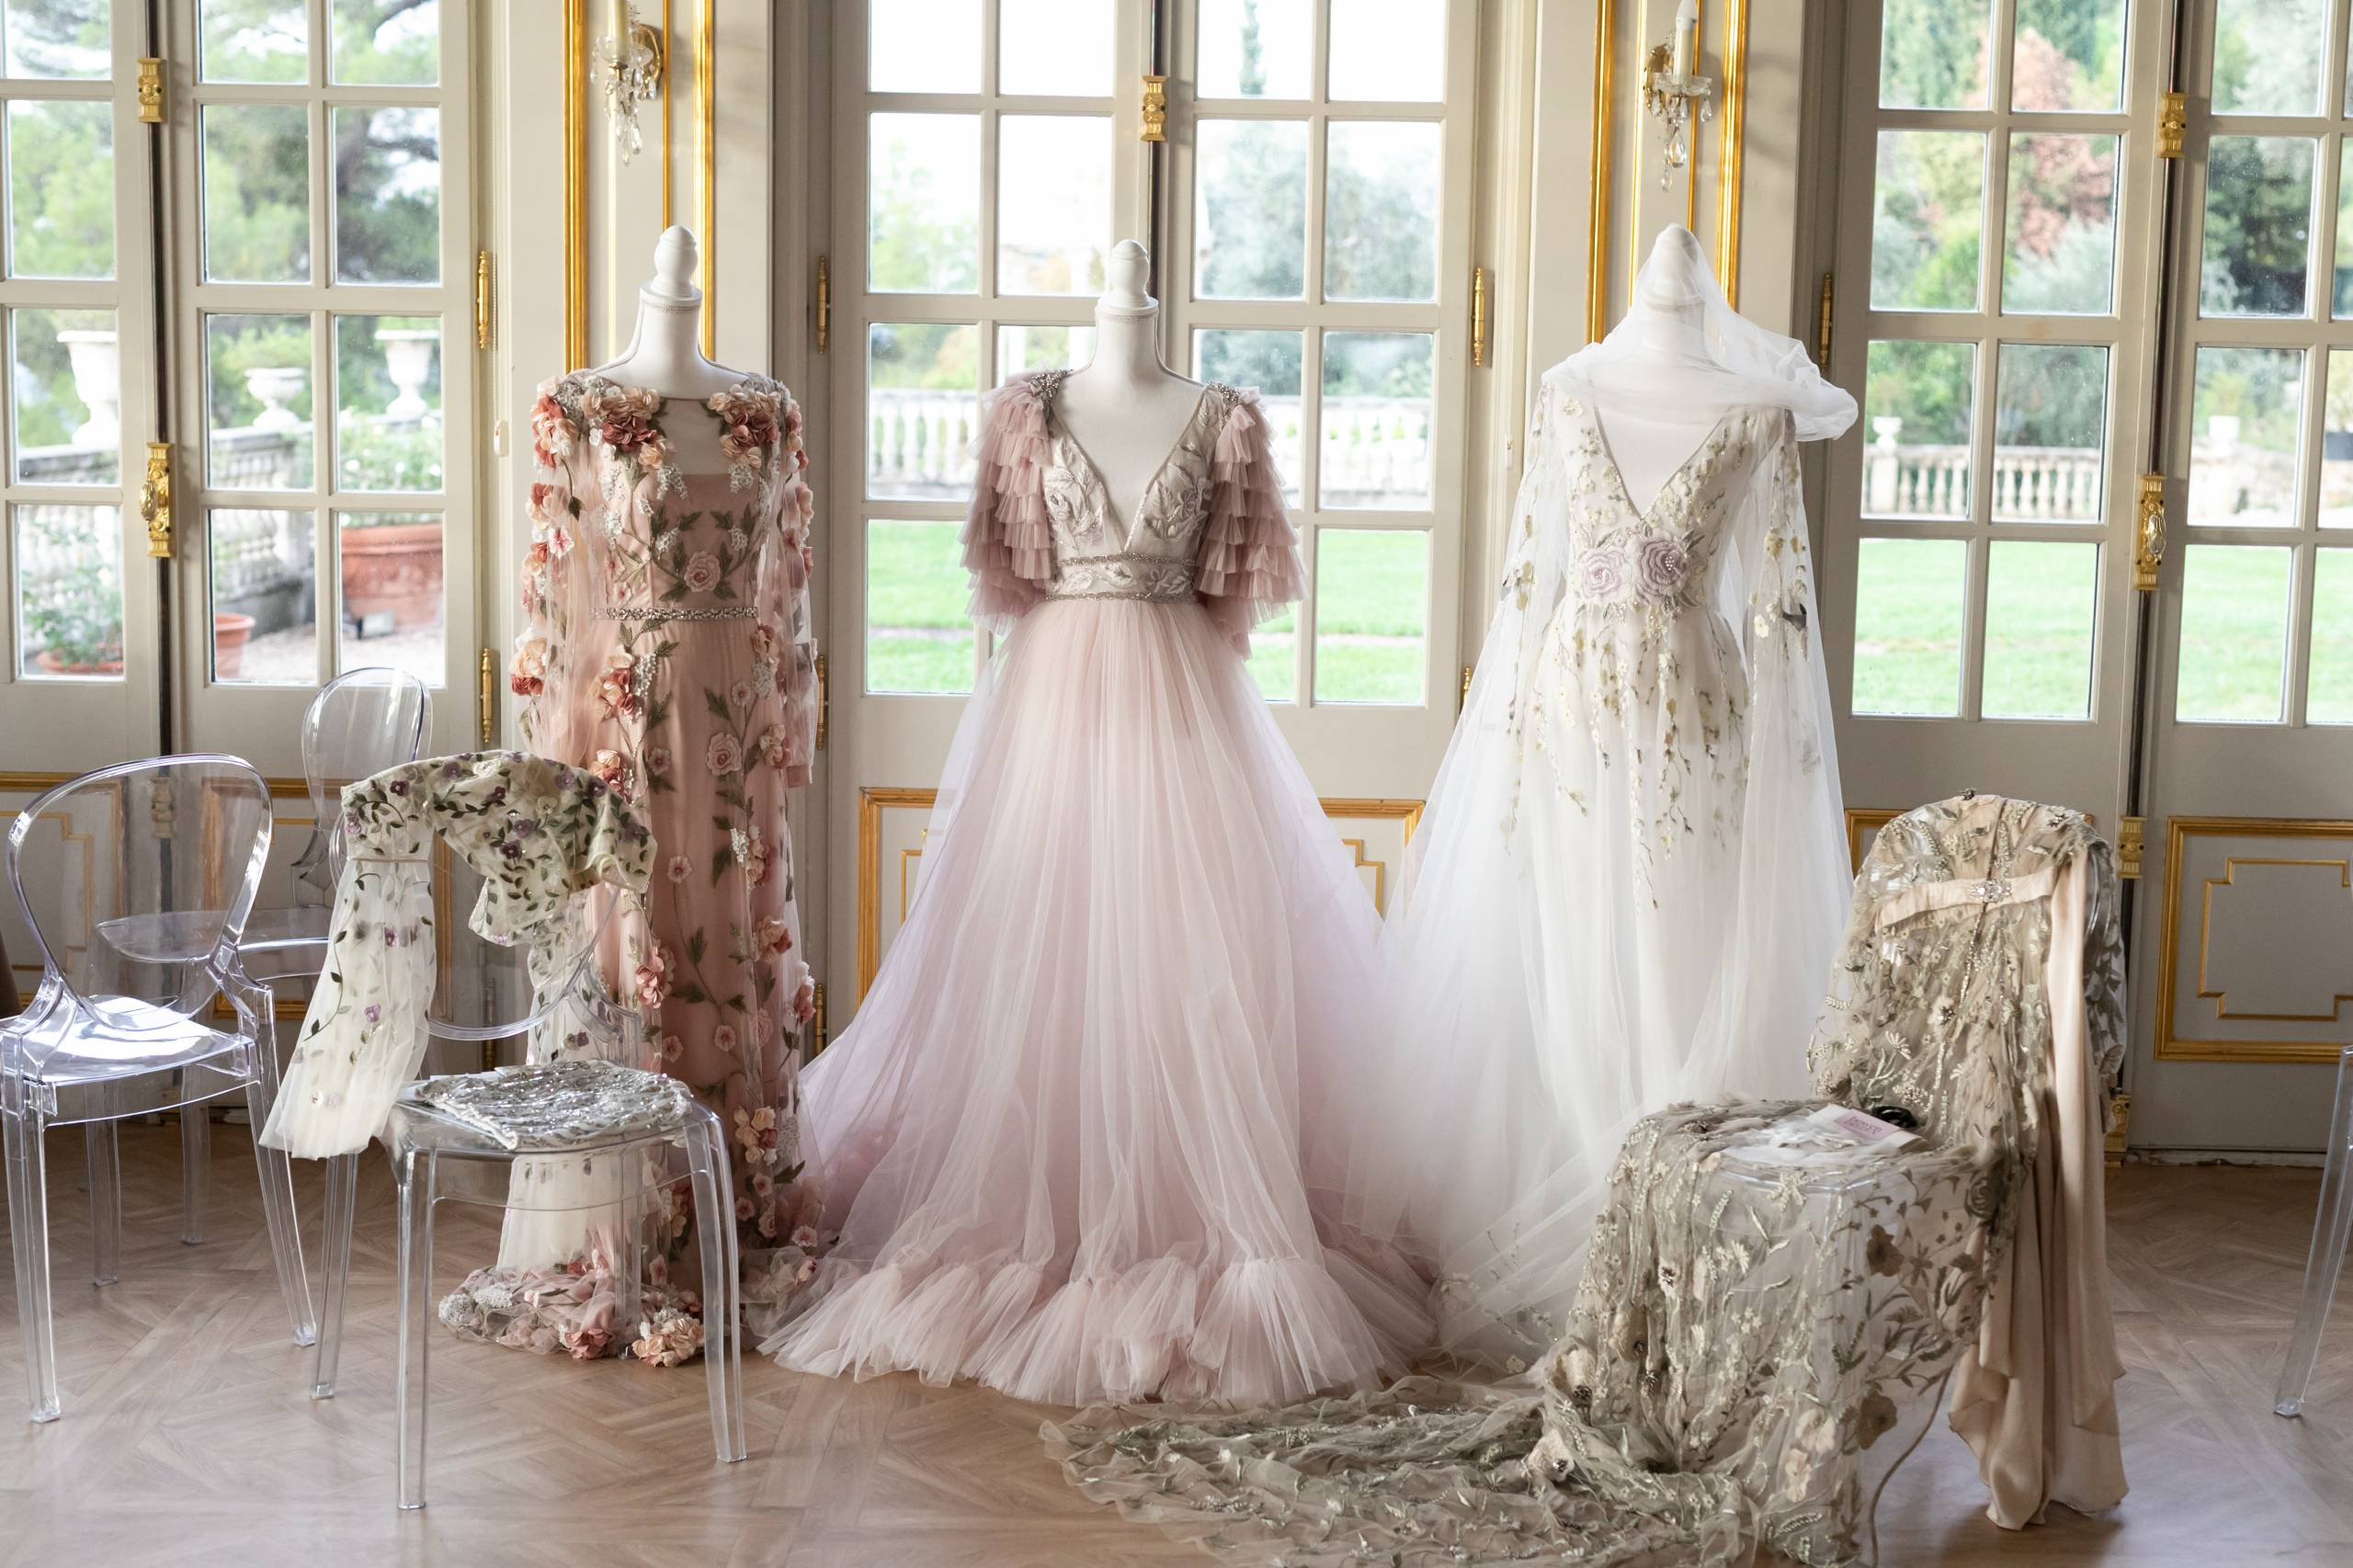 A Look Back At The 2019 Wedding Royal Atelier At The Chateau Saint Georges